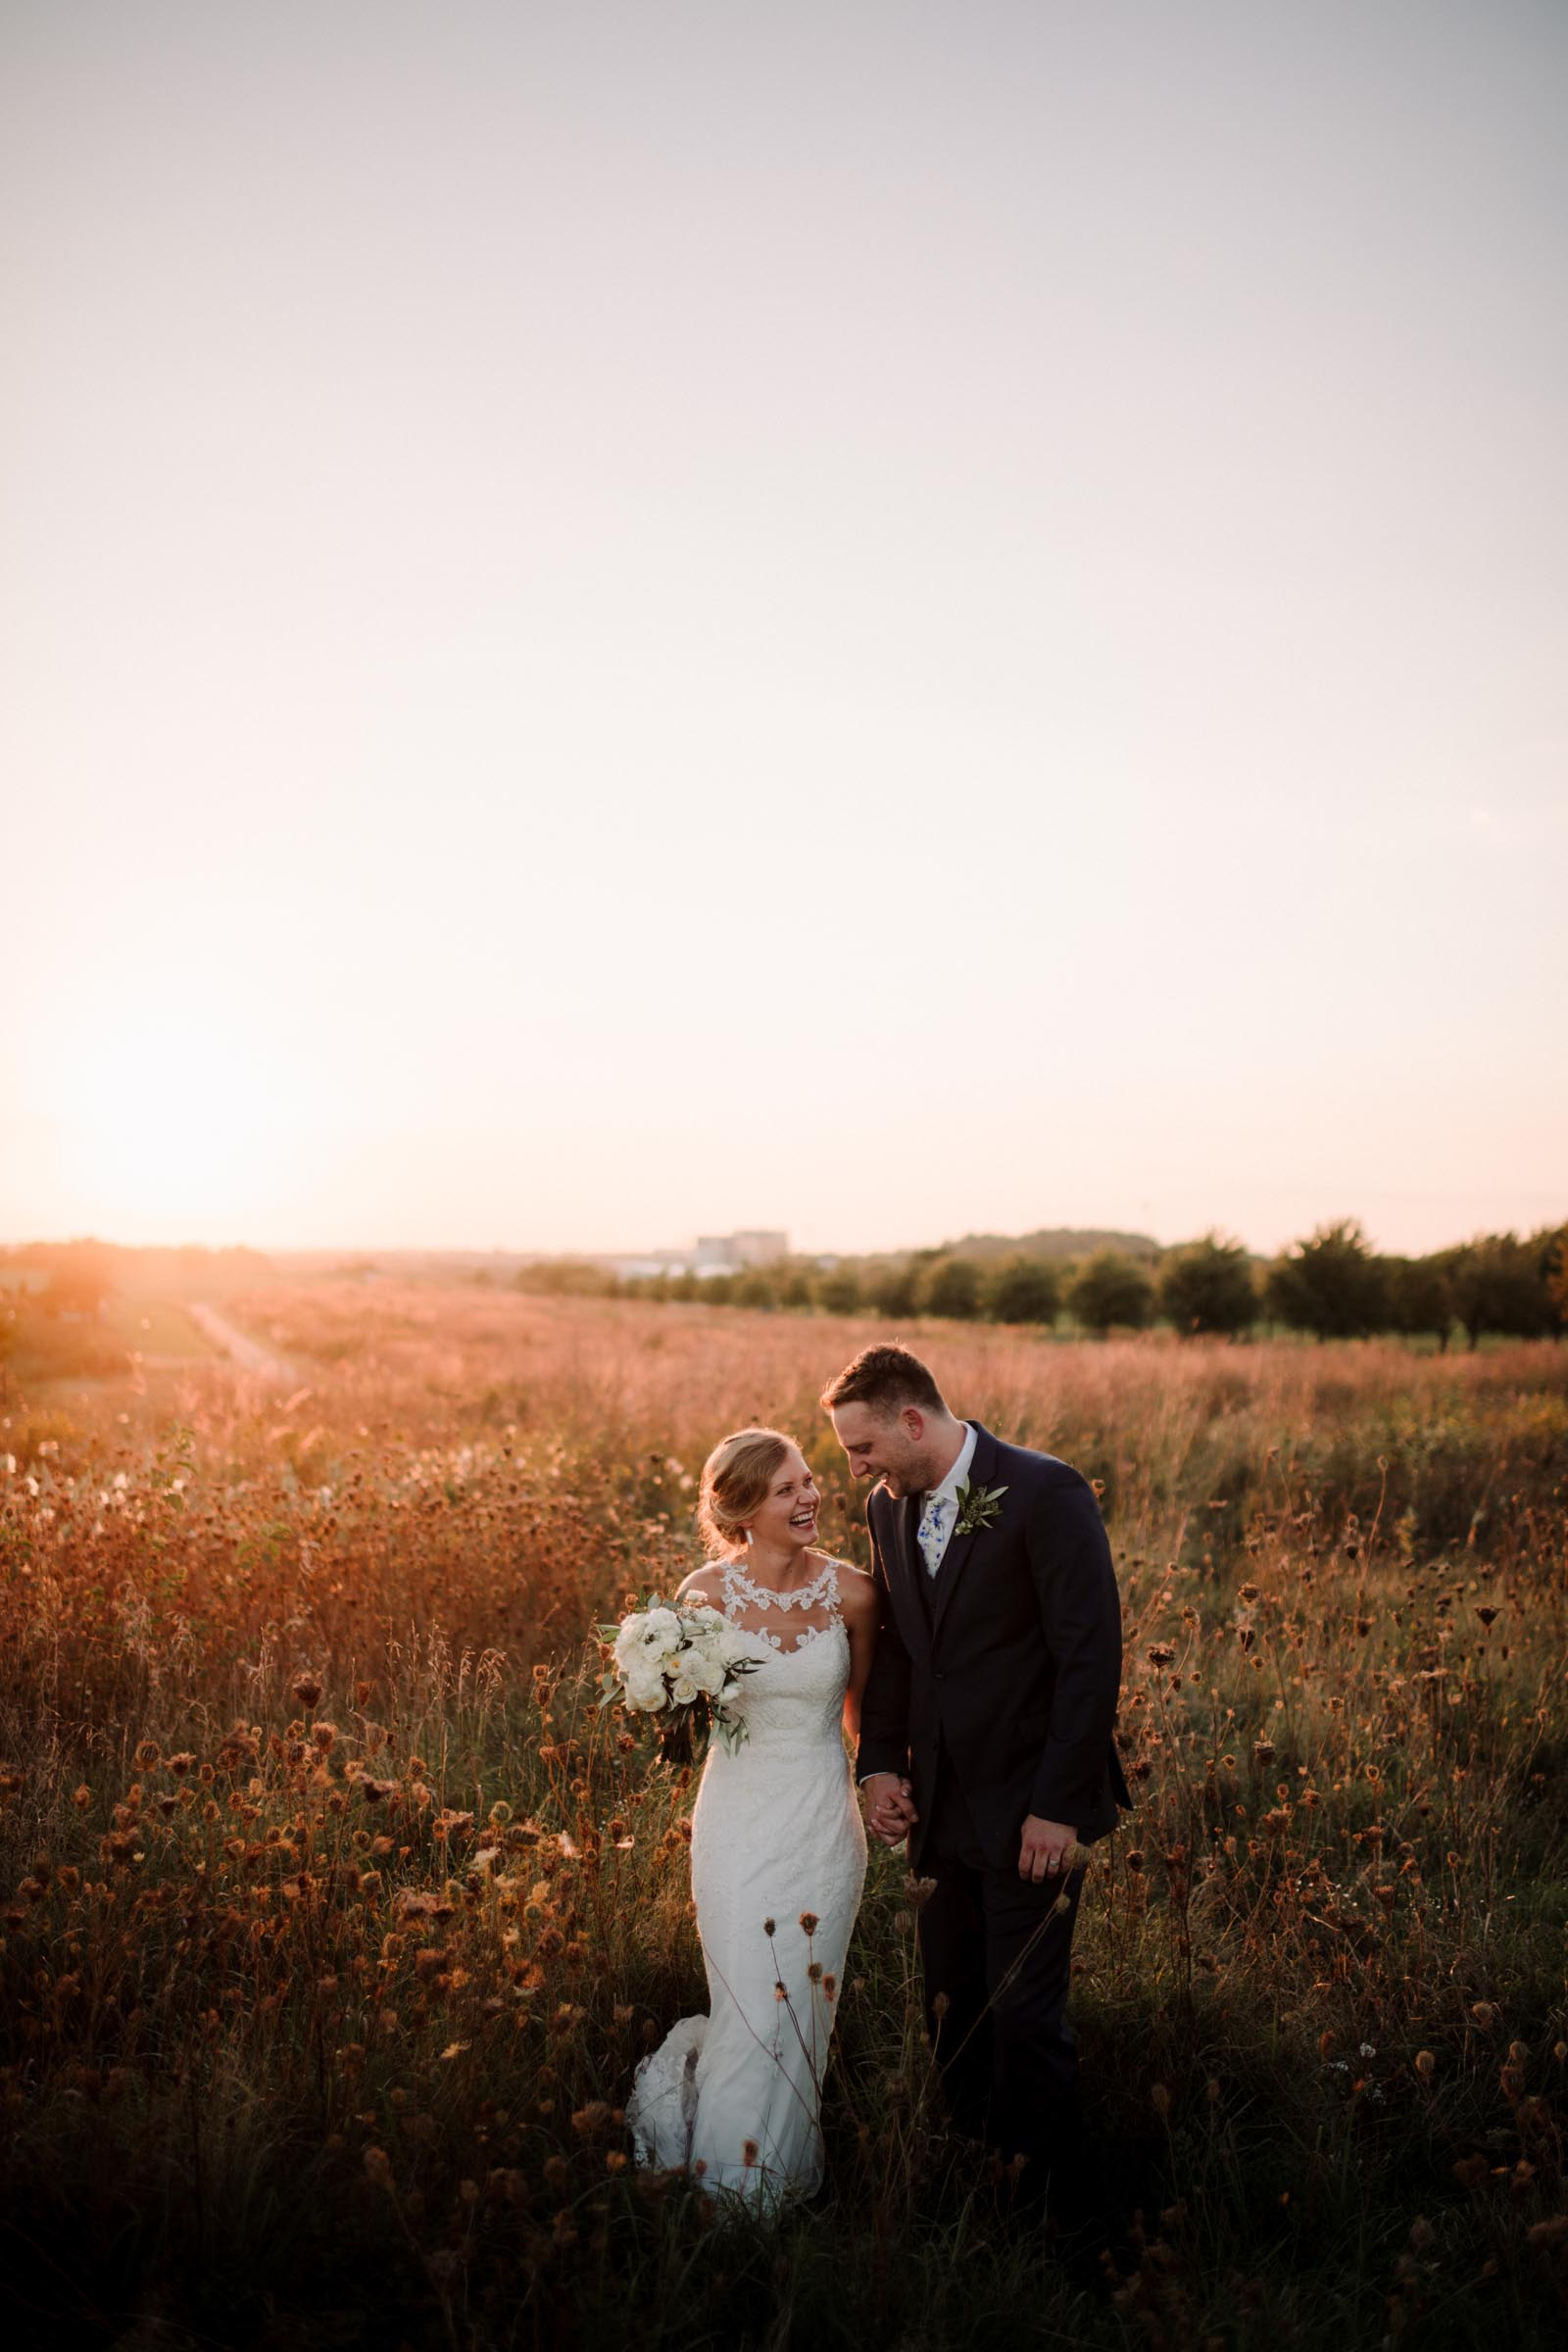 bride and groom in golden field at sunset